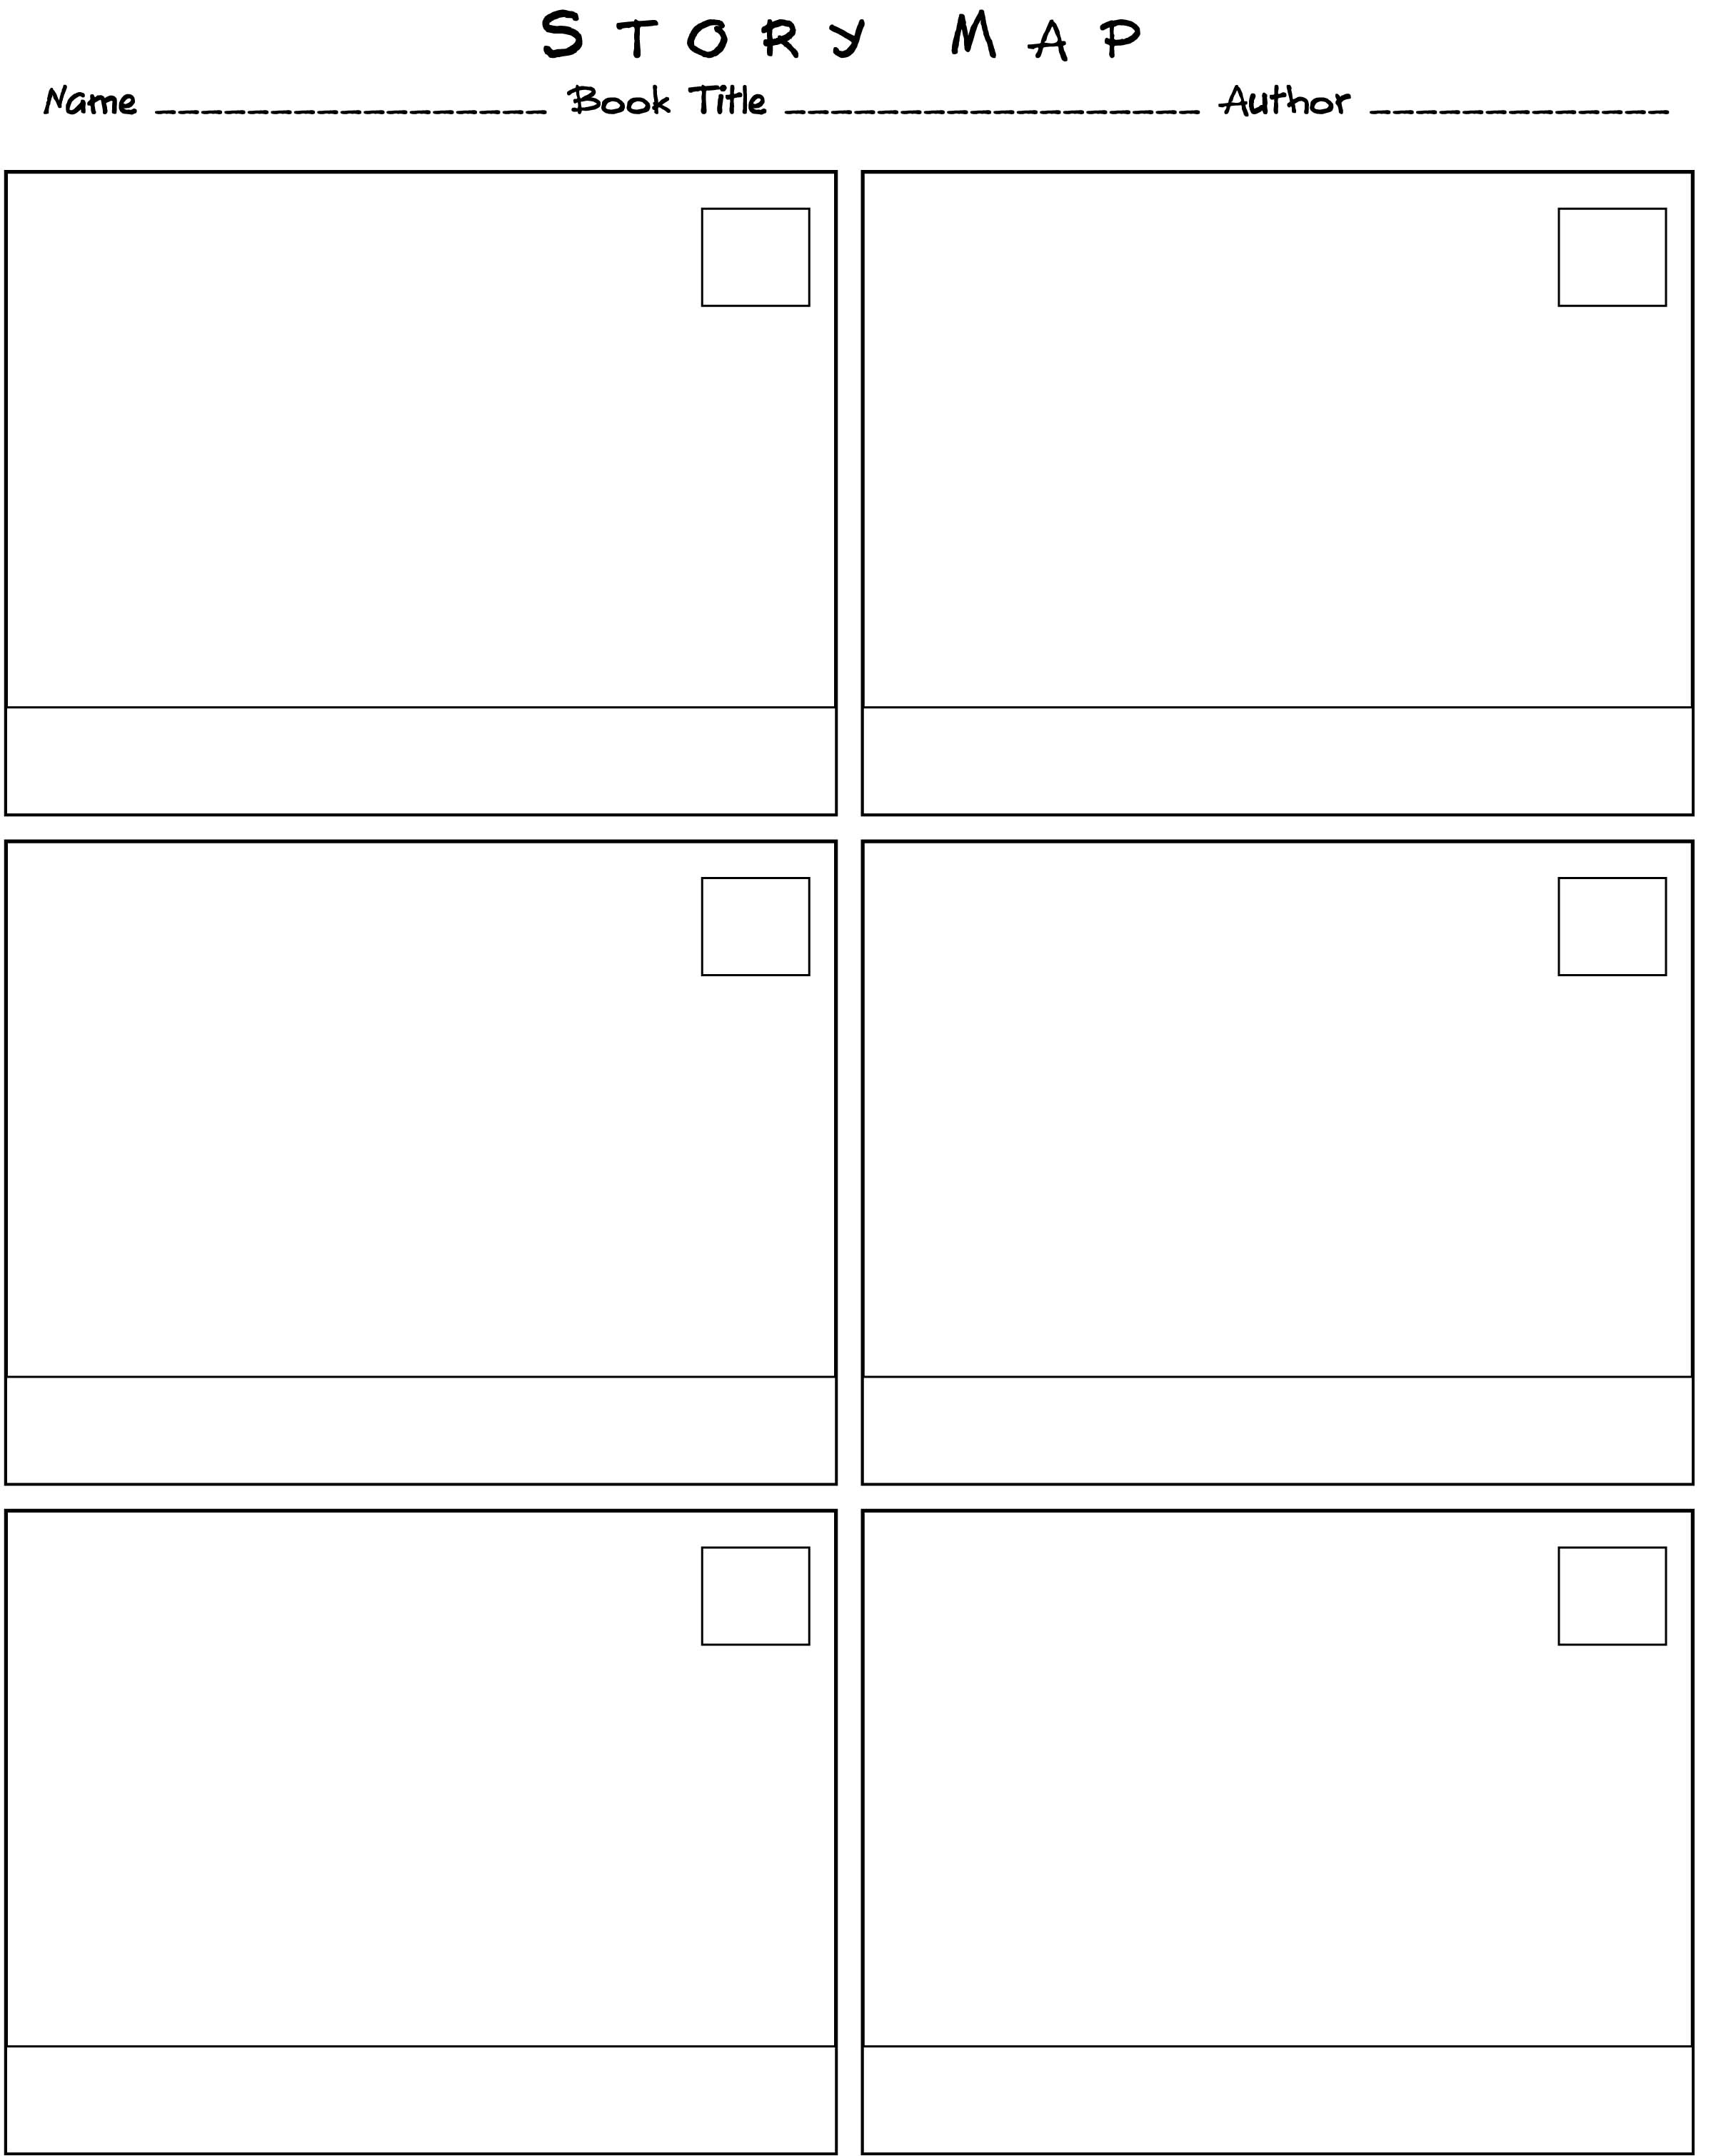 Published September 12, 2009 in Graphic Organizers II: Story Map ...